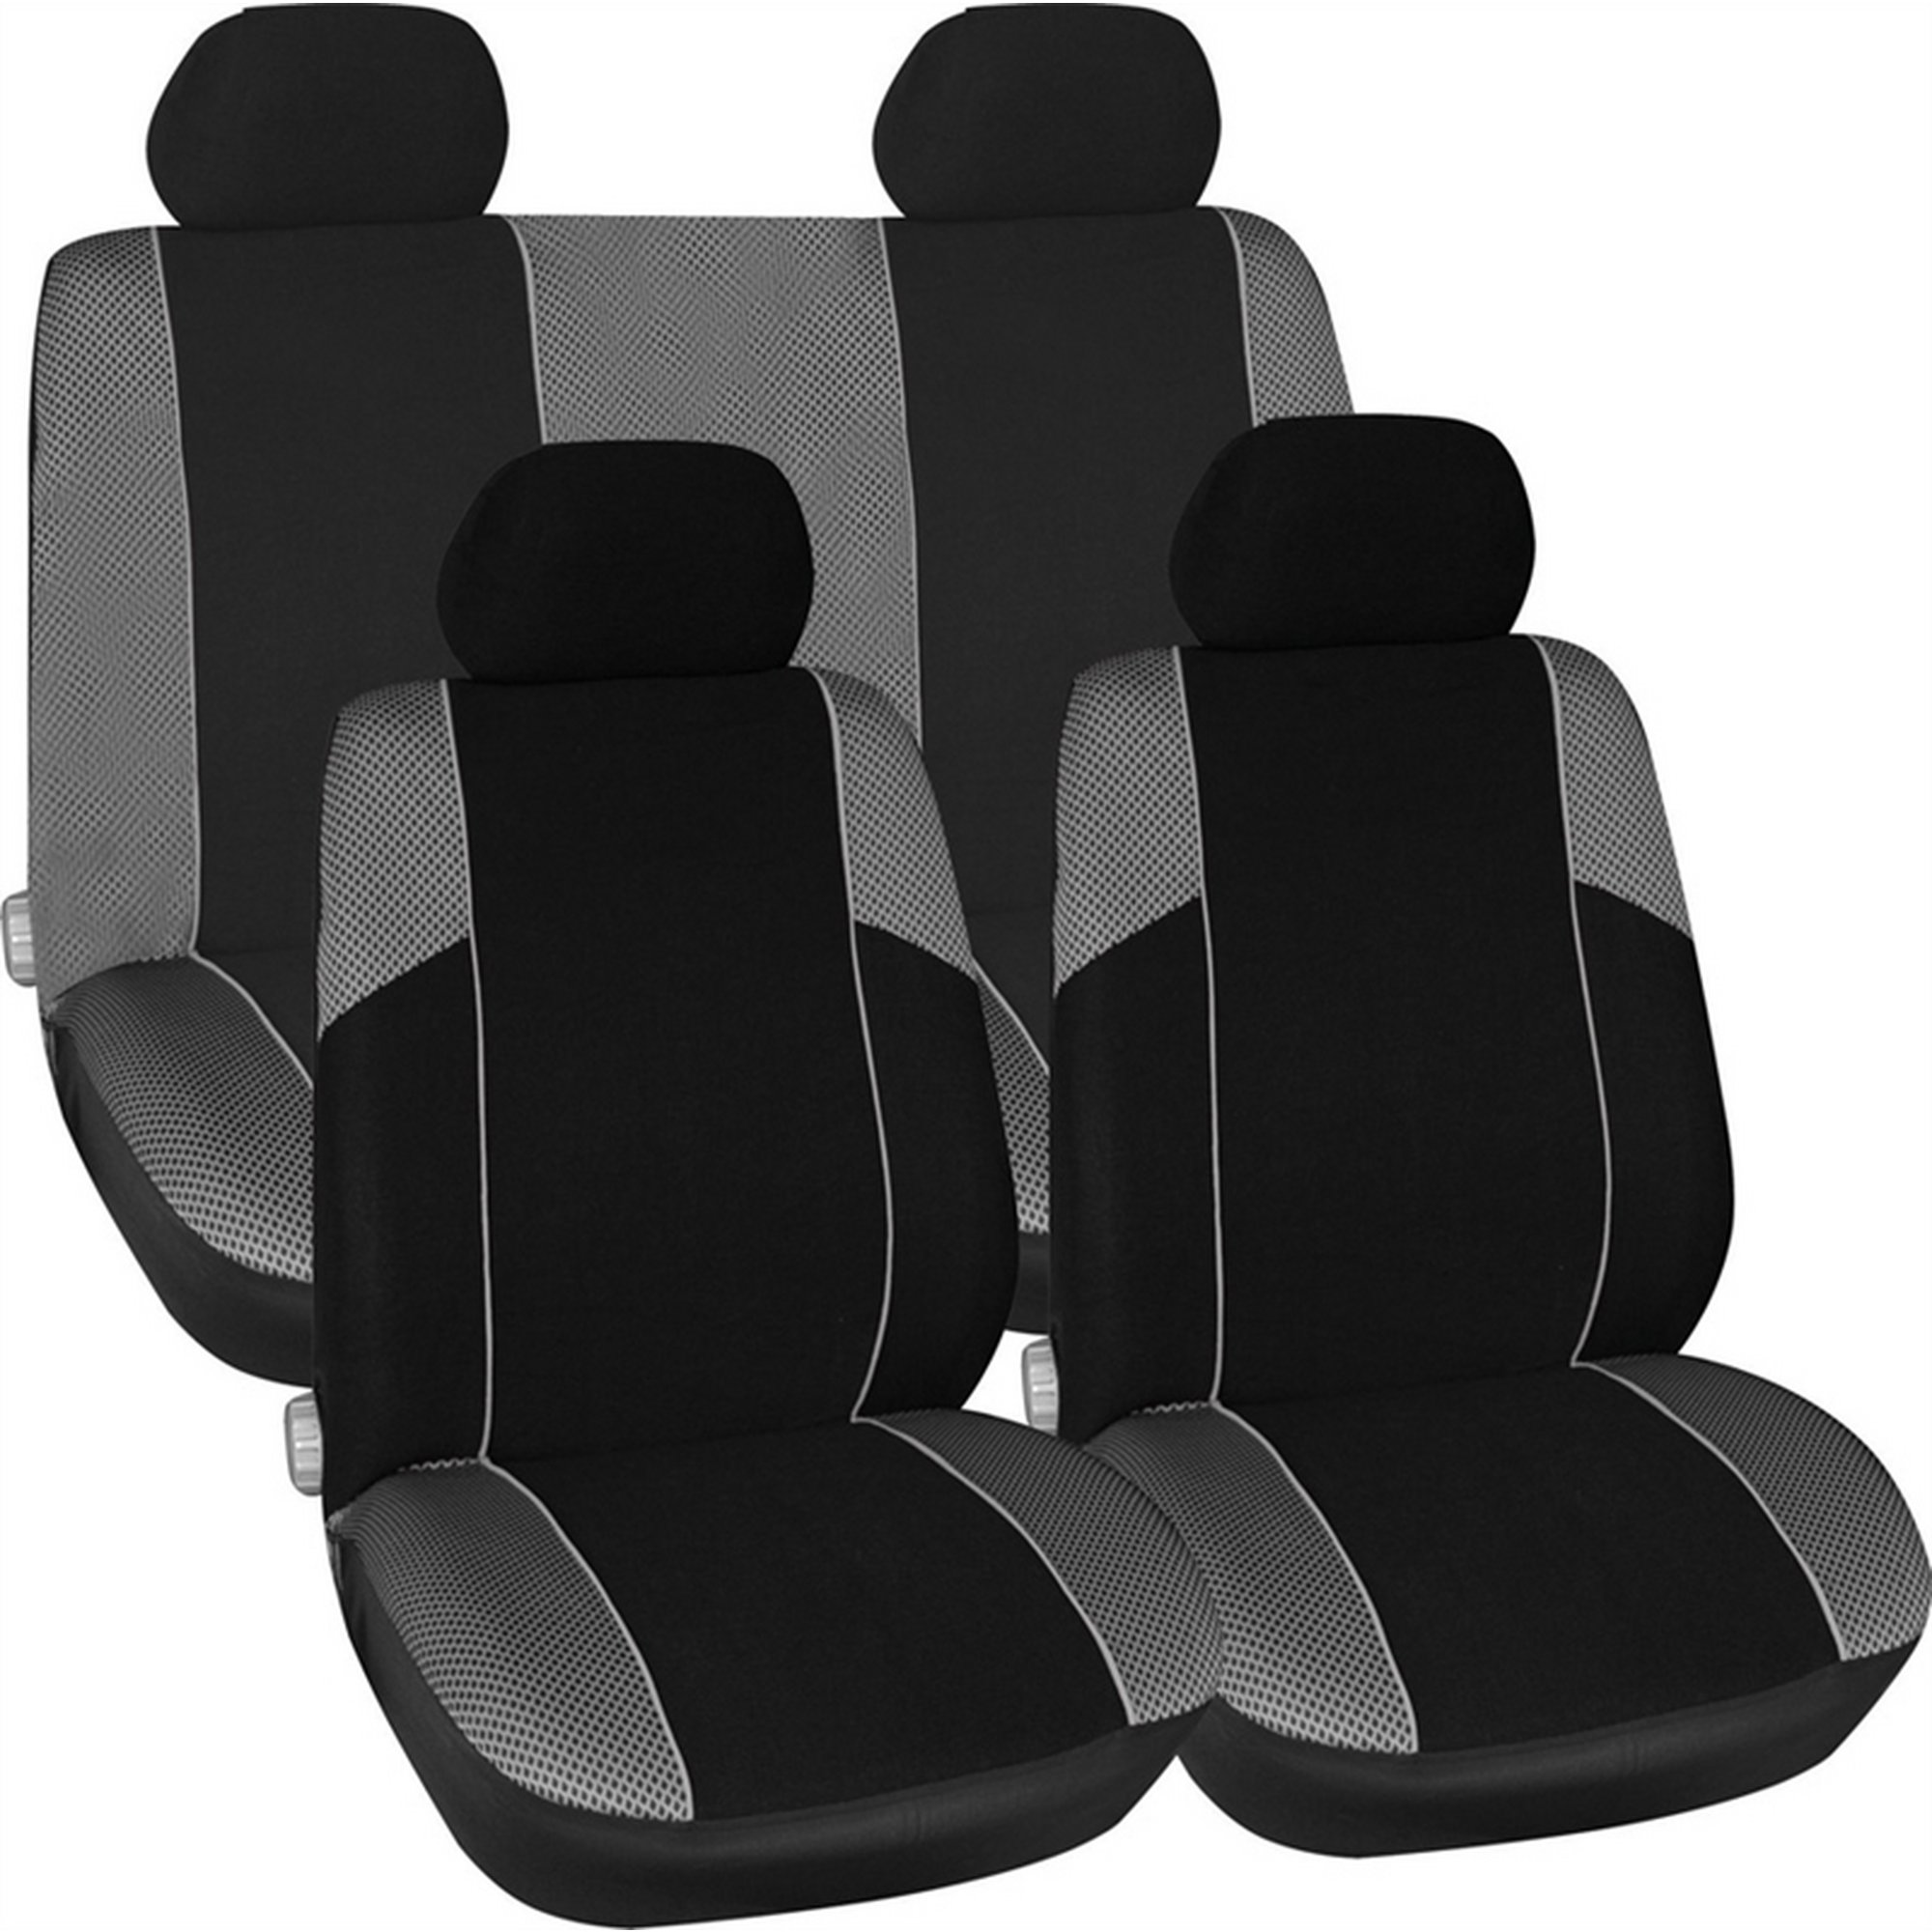 Image of Universal Low Back Car Seat Cover Set